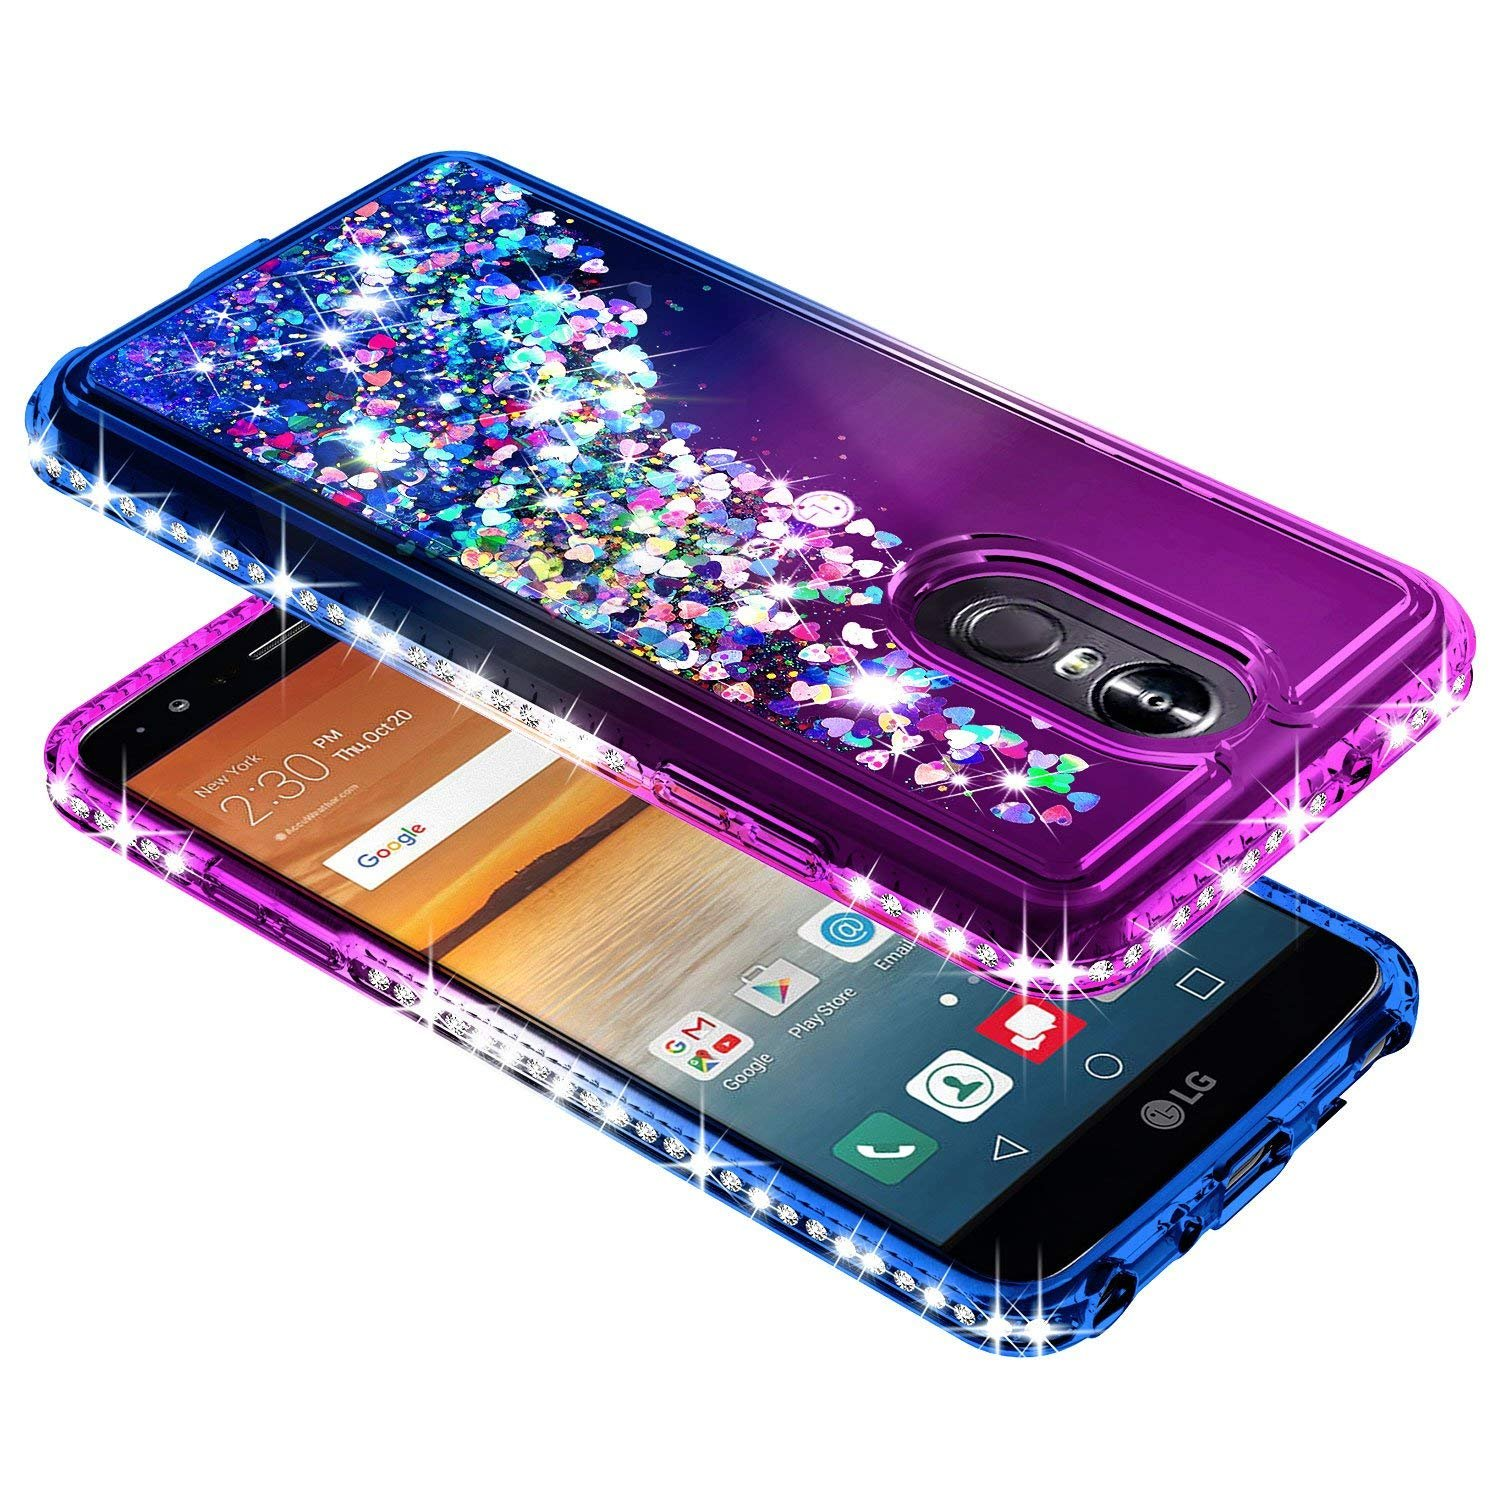 LG Stylo 4 Case, LG Stylo 4 Plus Case, LG Q Stylus w/[Full Cover Tempered Glass Screen Protector], NageBee Glitter Liquid Quicksand Waterfall Flowing Sparkle Shiny Diamond Girls Cute Case -Purple/Blue by NageBee (Image #5)